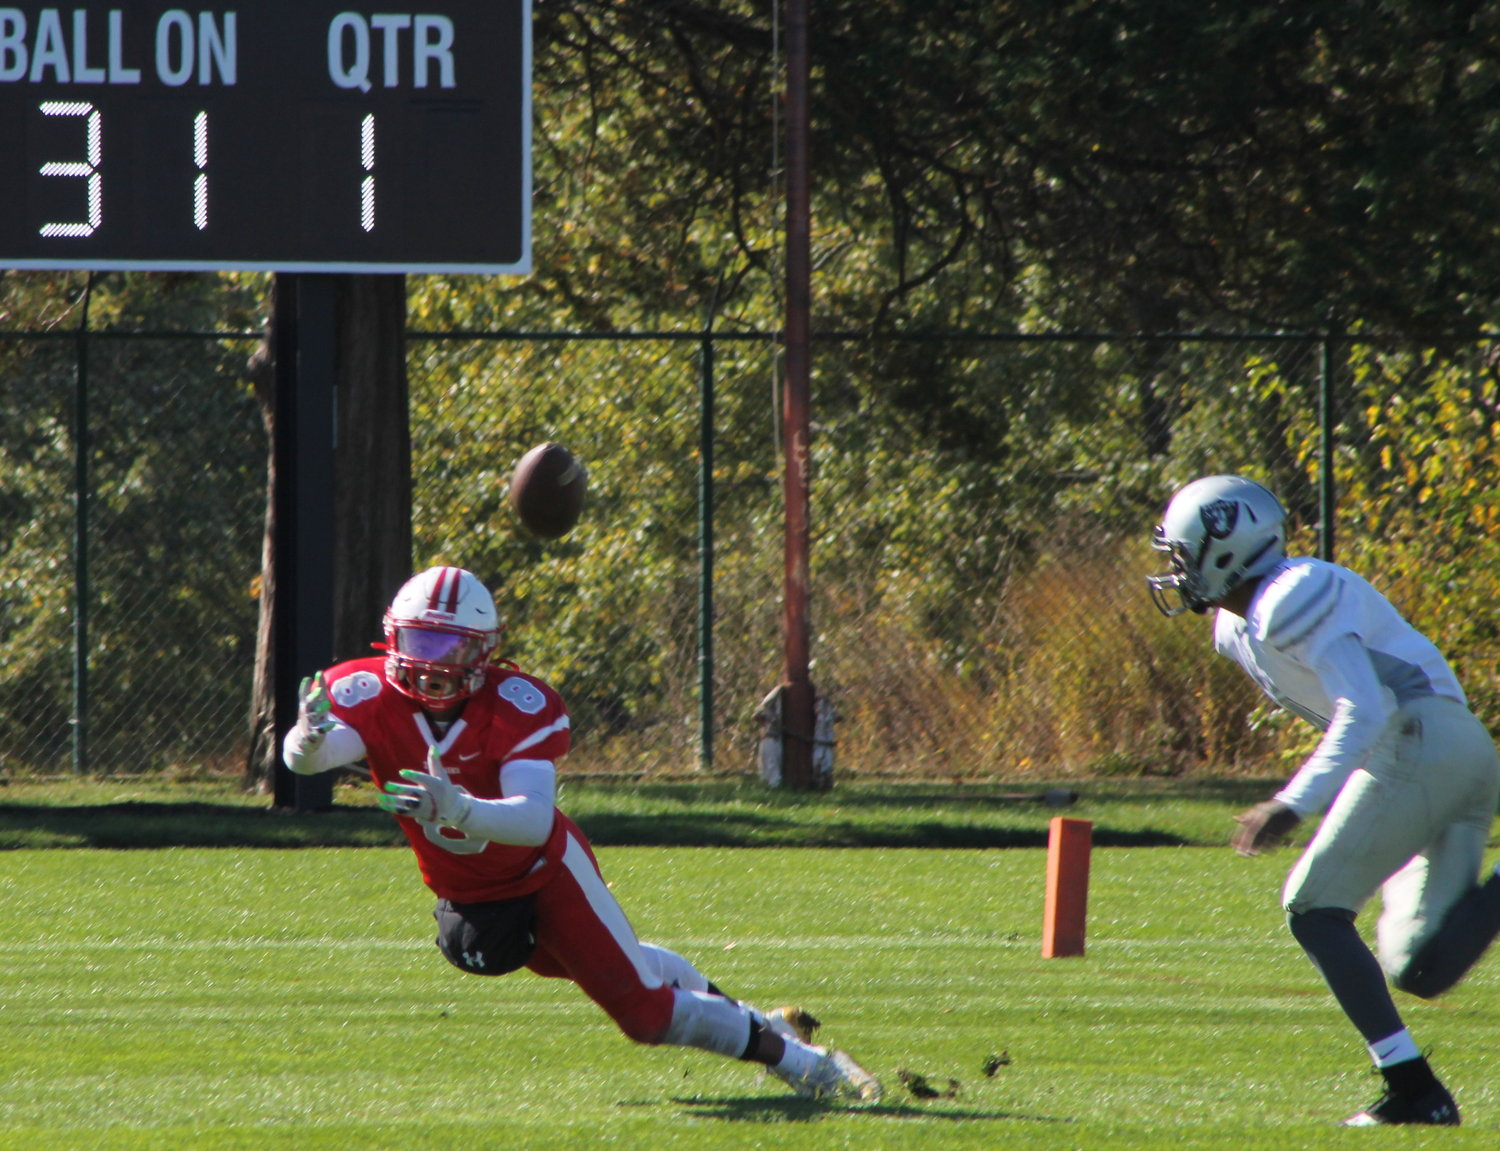 Jahad Davis Pinto dives to make a catch to set up a Townie touchdown against the Raiders.